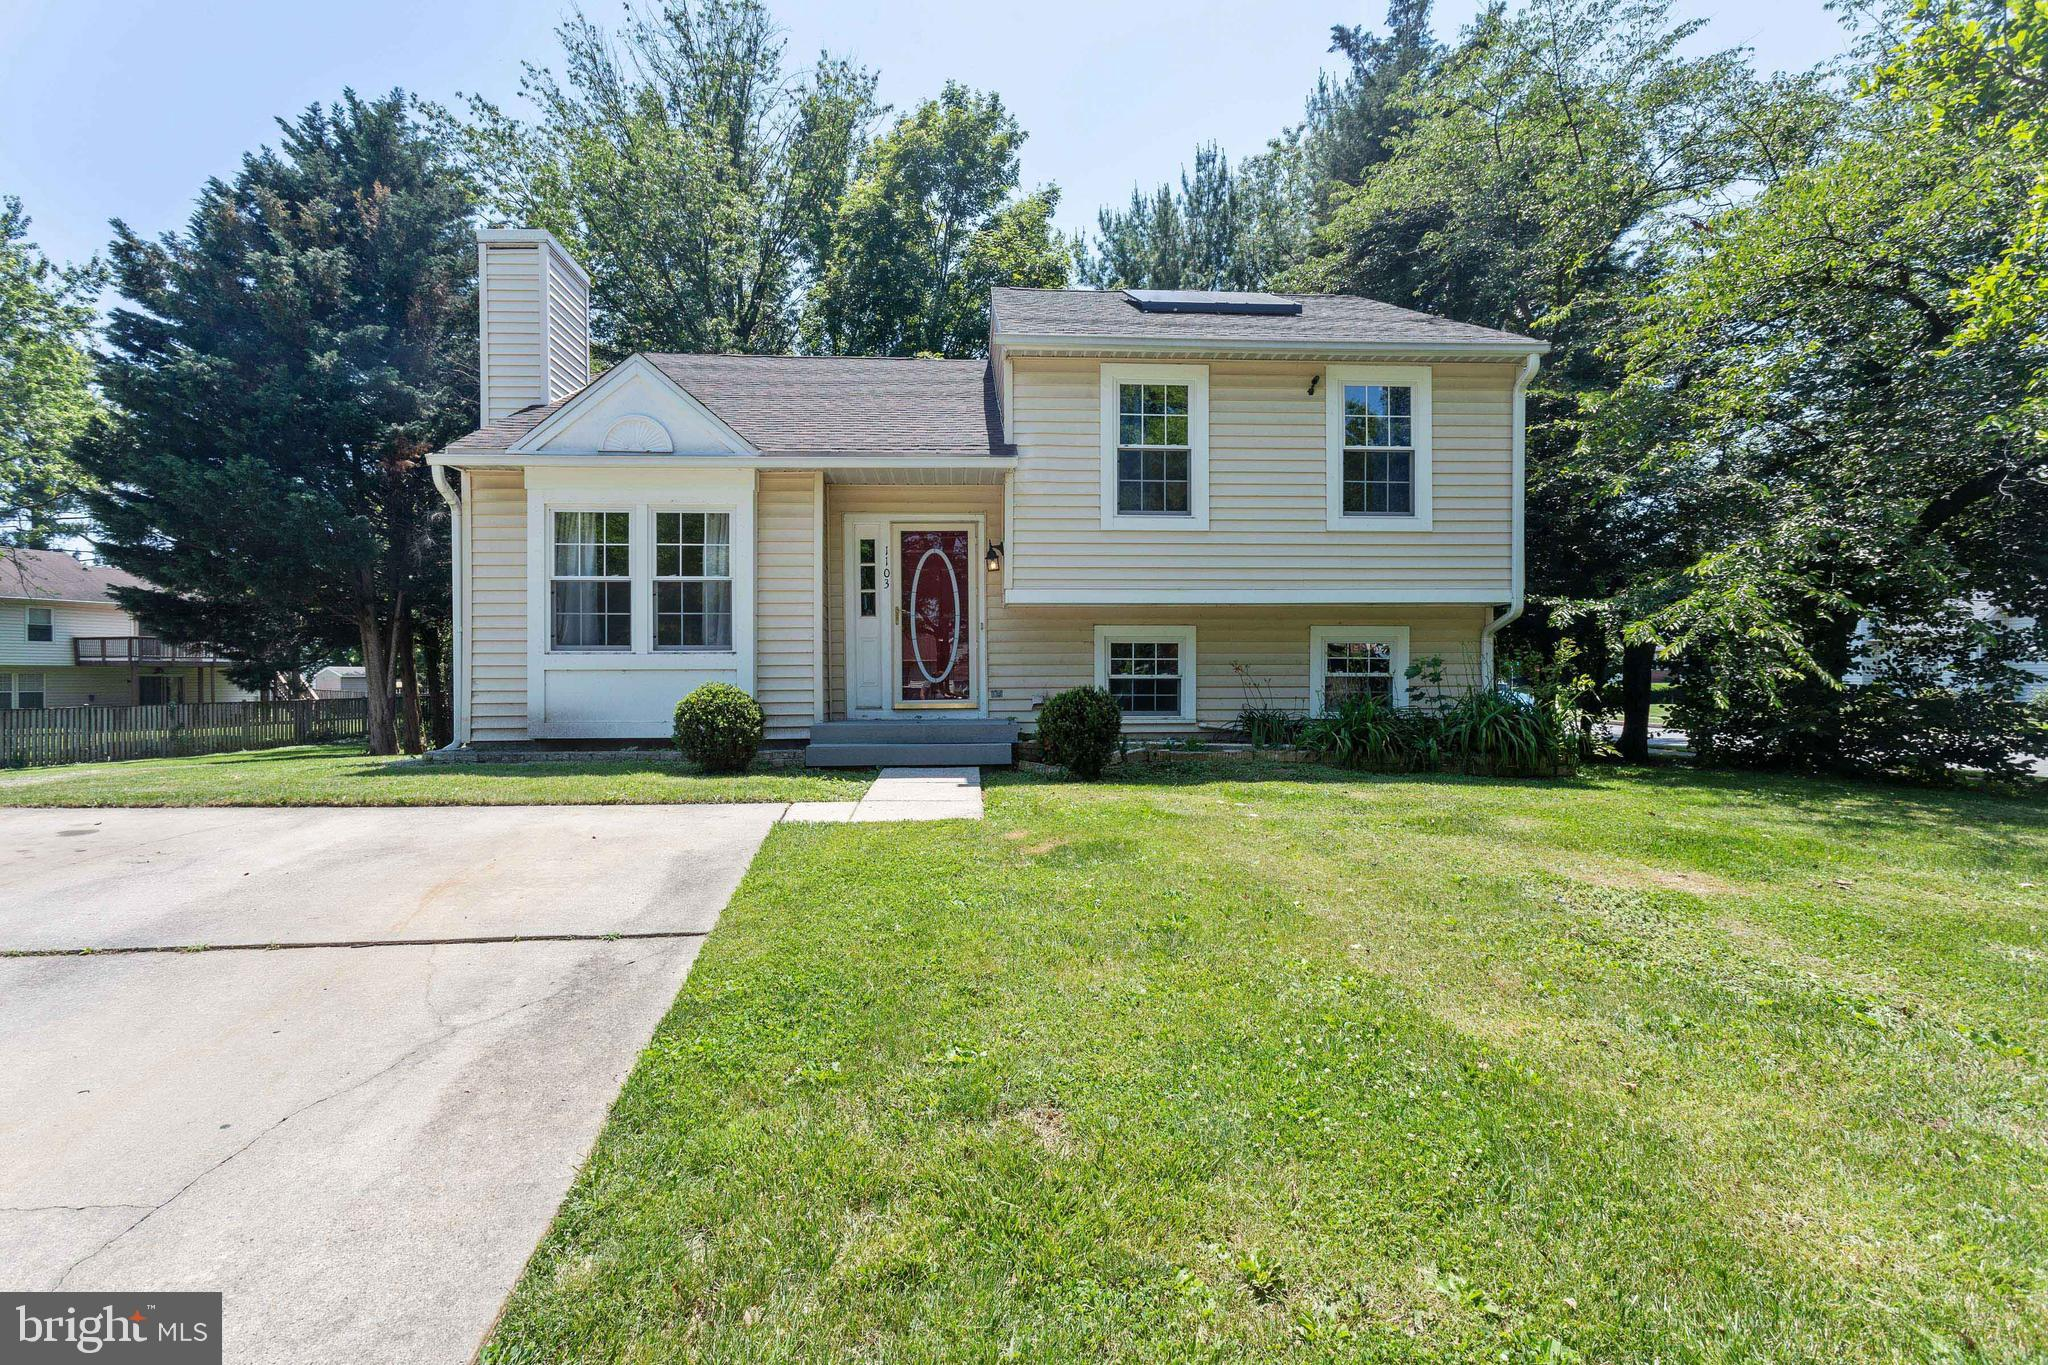 Welcome Home!  This spacious split level home sits on a corner lot and offers four bedrooms, 2 full baths, large deck and patio for entertaining and so much more!  Basement is fully finished, SS appliances and plenty of storage space! Convenient to 695 and 70 for an easy commute!